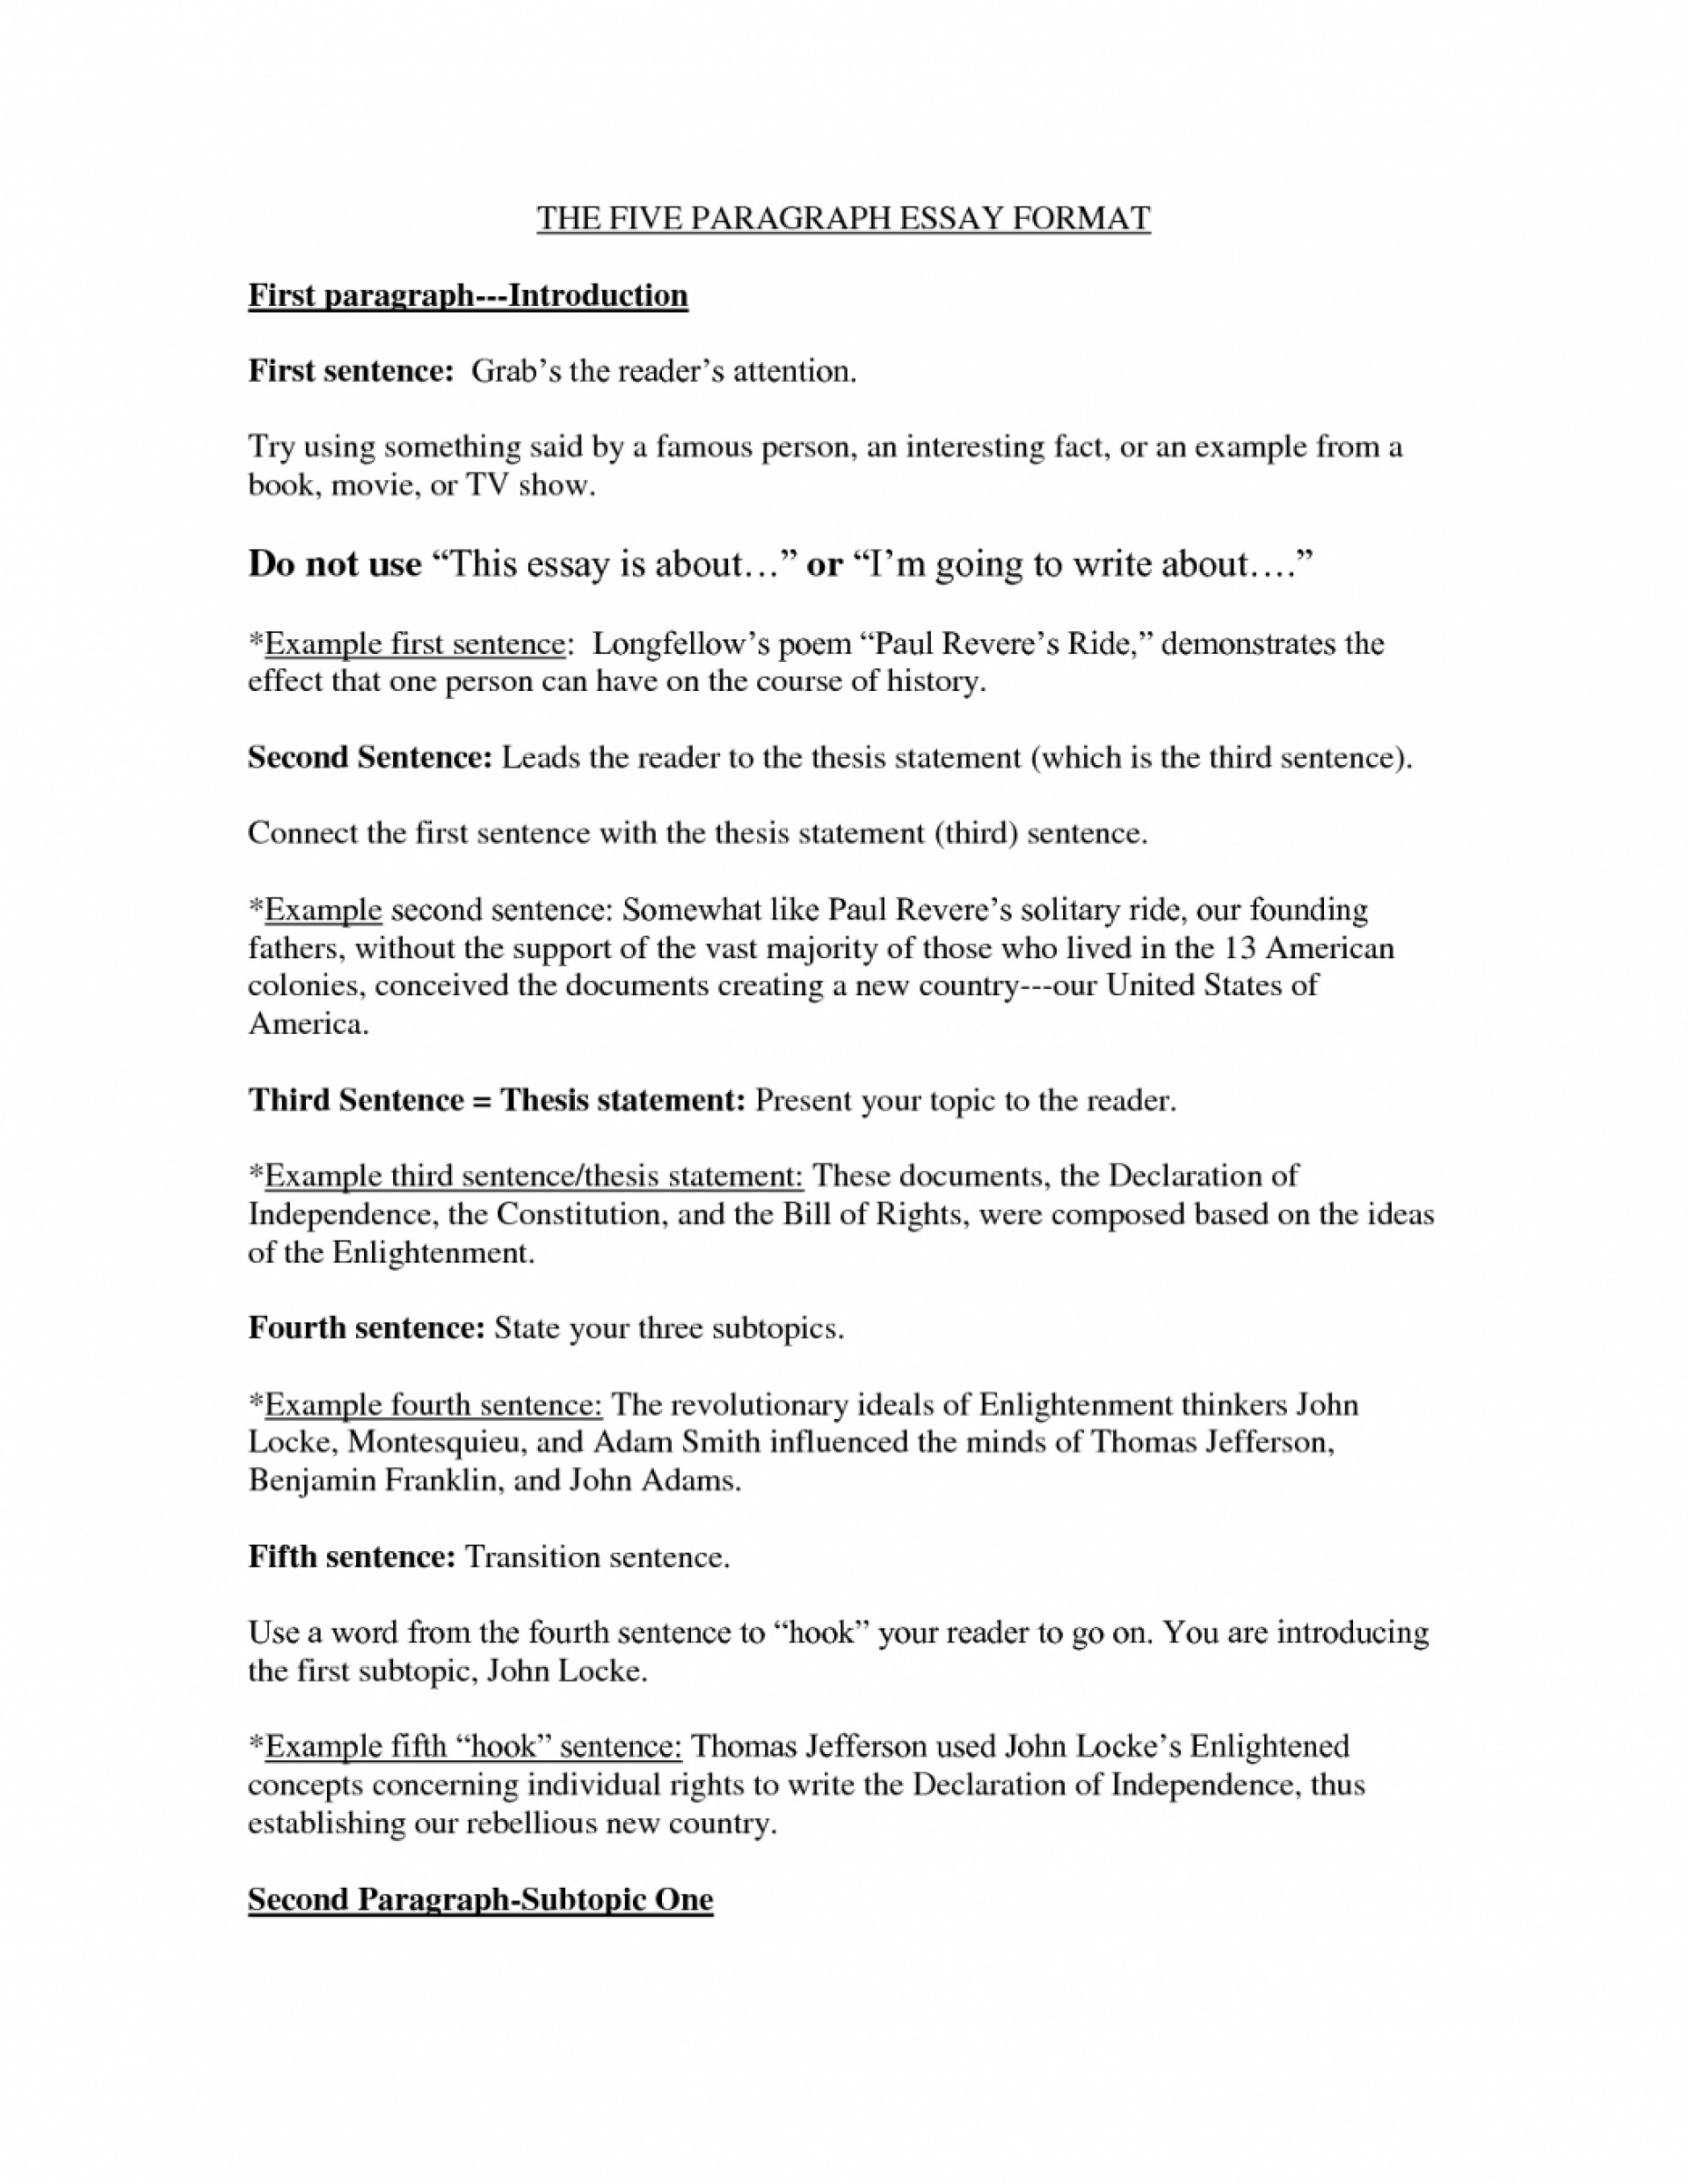 018 Good Hooks For Persuasive Essays Argumentive Sample What Is Hook Essay The Thesis Statement Should O3c Great On School Uniforms Writing 1048x1356 Example In Top A An About Crucible Odysseus Leadership 1920